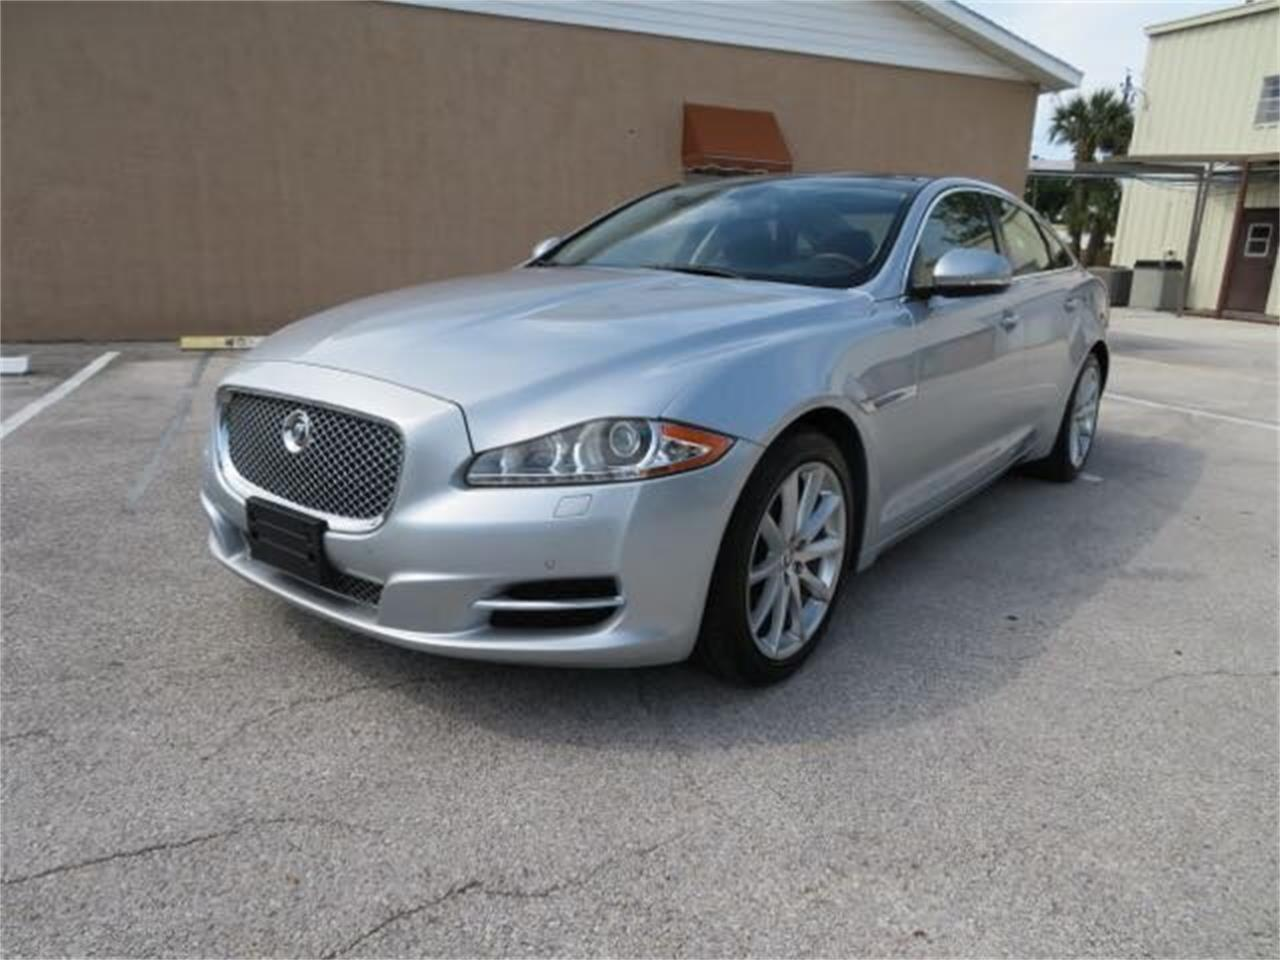 2011 Jaguar XJ (CC-1232908) for sale in Holly Hill, Florida